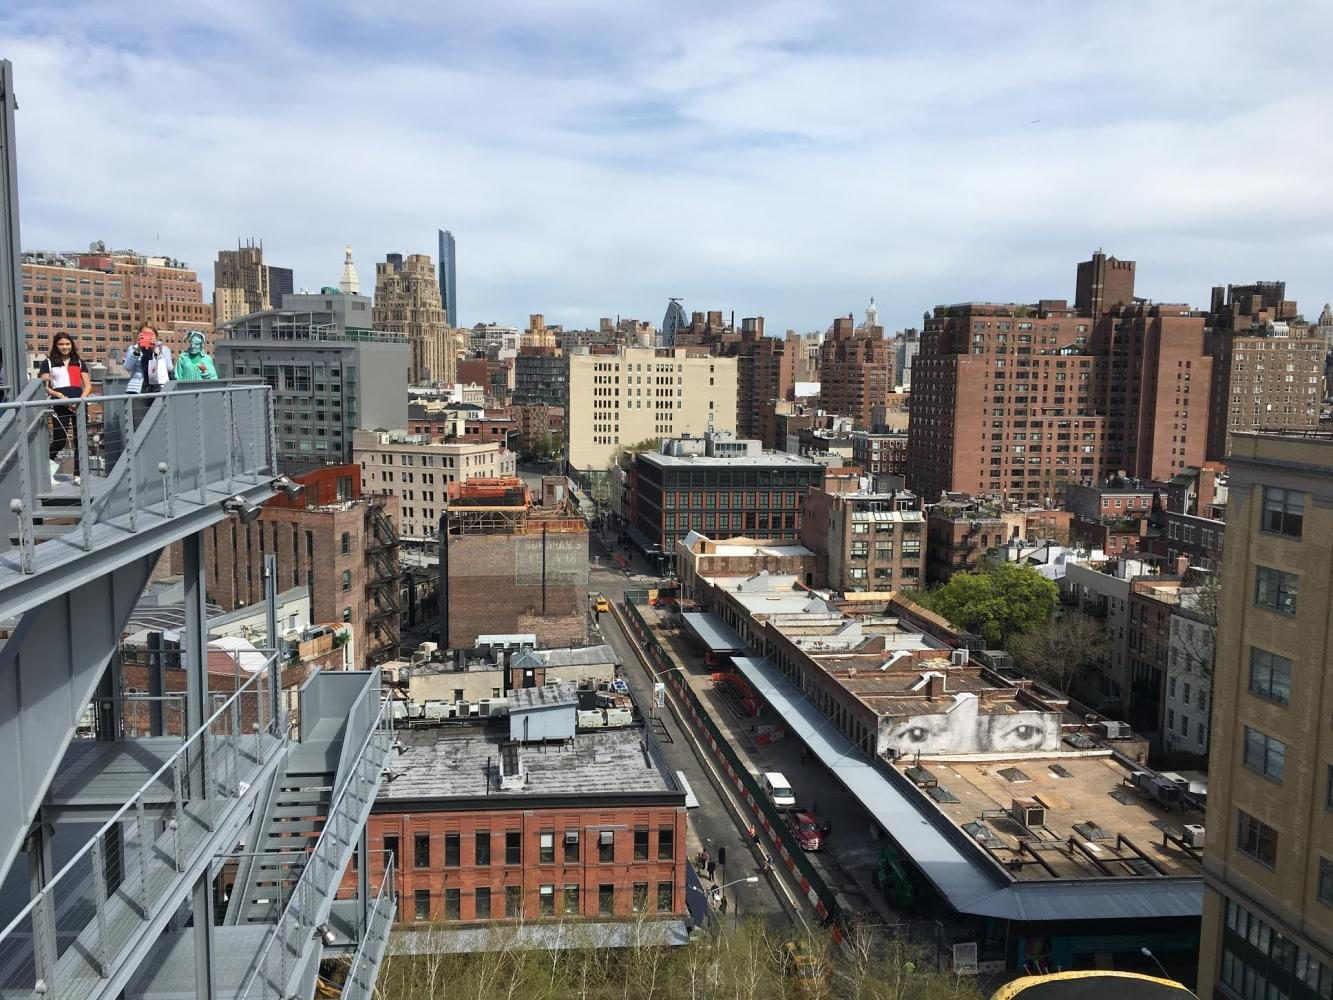 The+Highline+is+a+great+place+to+take+a+stroll+on+a+warm+spring+day.+There+are+various+things+to+do+while+strolling+the+Highline%2C+including+snacking+on+the+variety+of+food+carts+lined+up+through+the+tunnel.